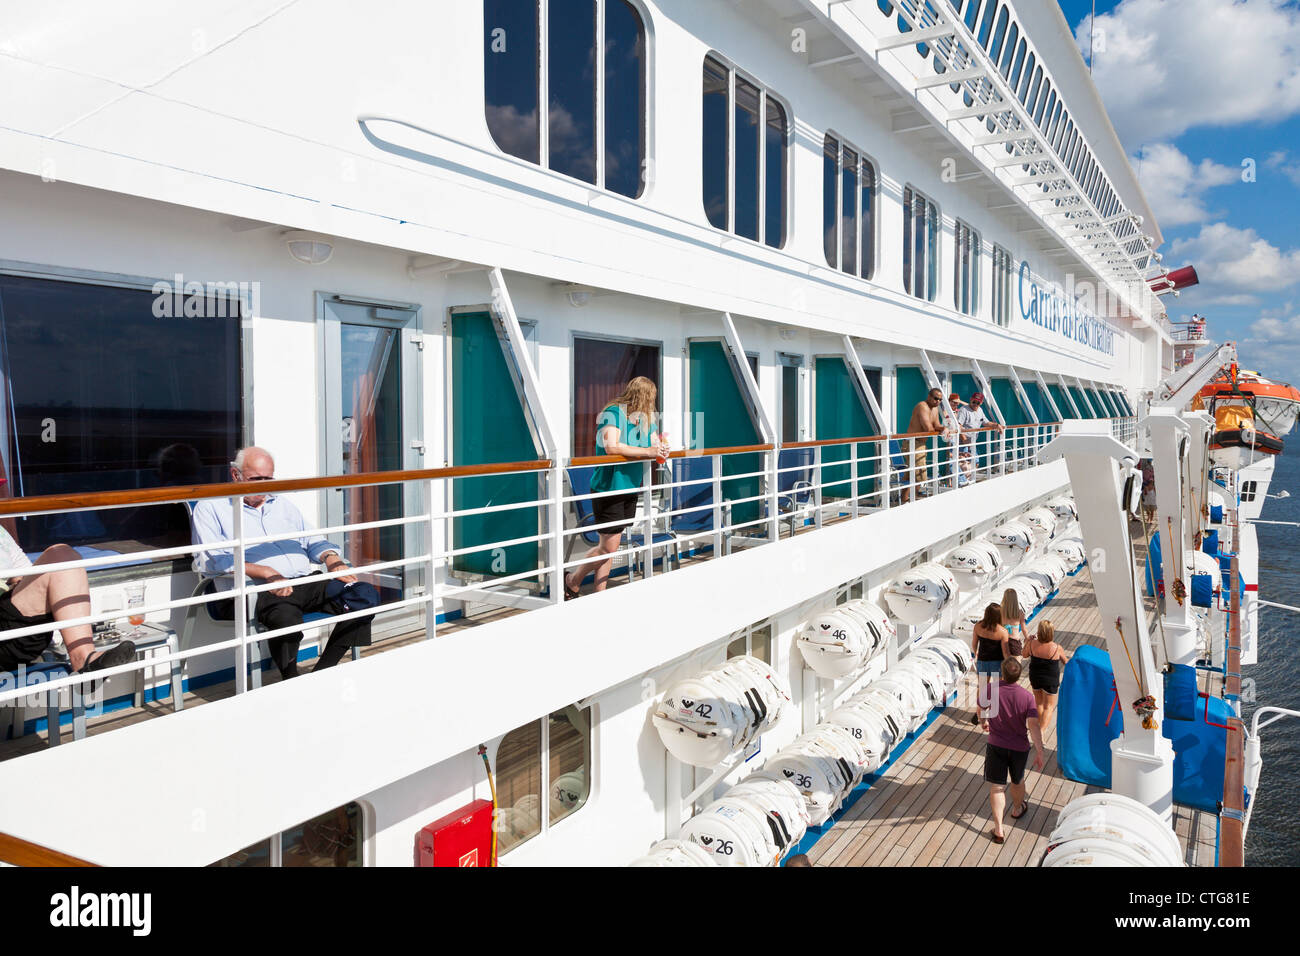 Cruise ship passengers on balconies wait for ship to leave port in Jacksonville, Florida, USA - Stock Image